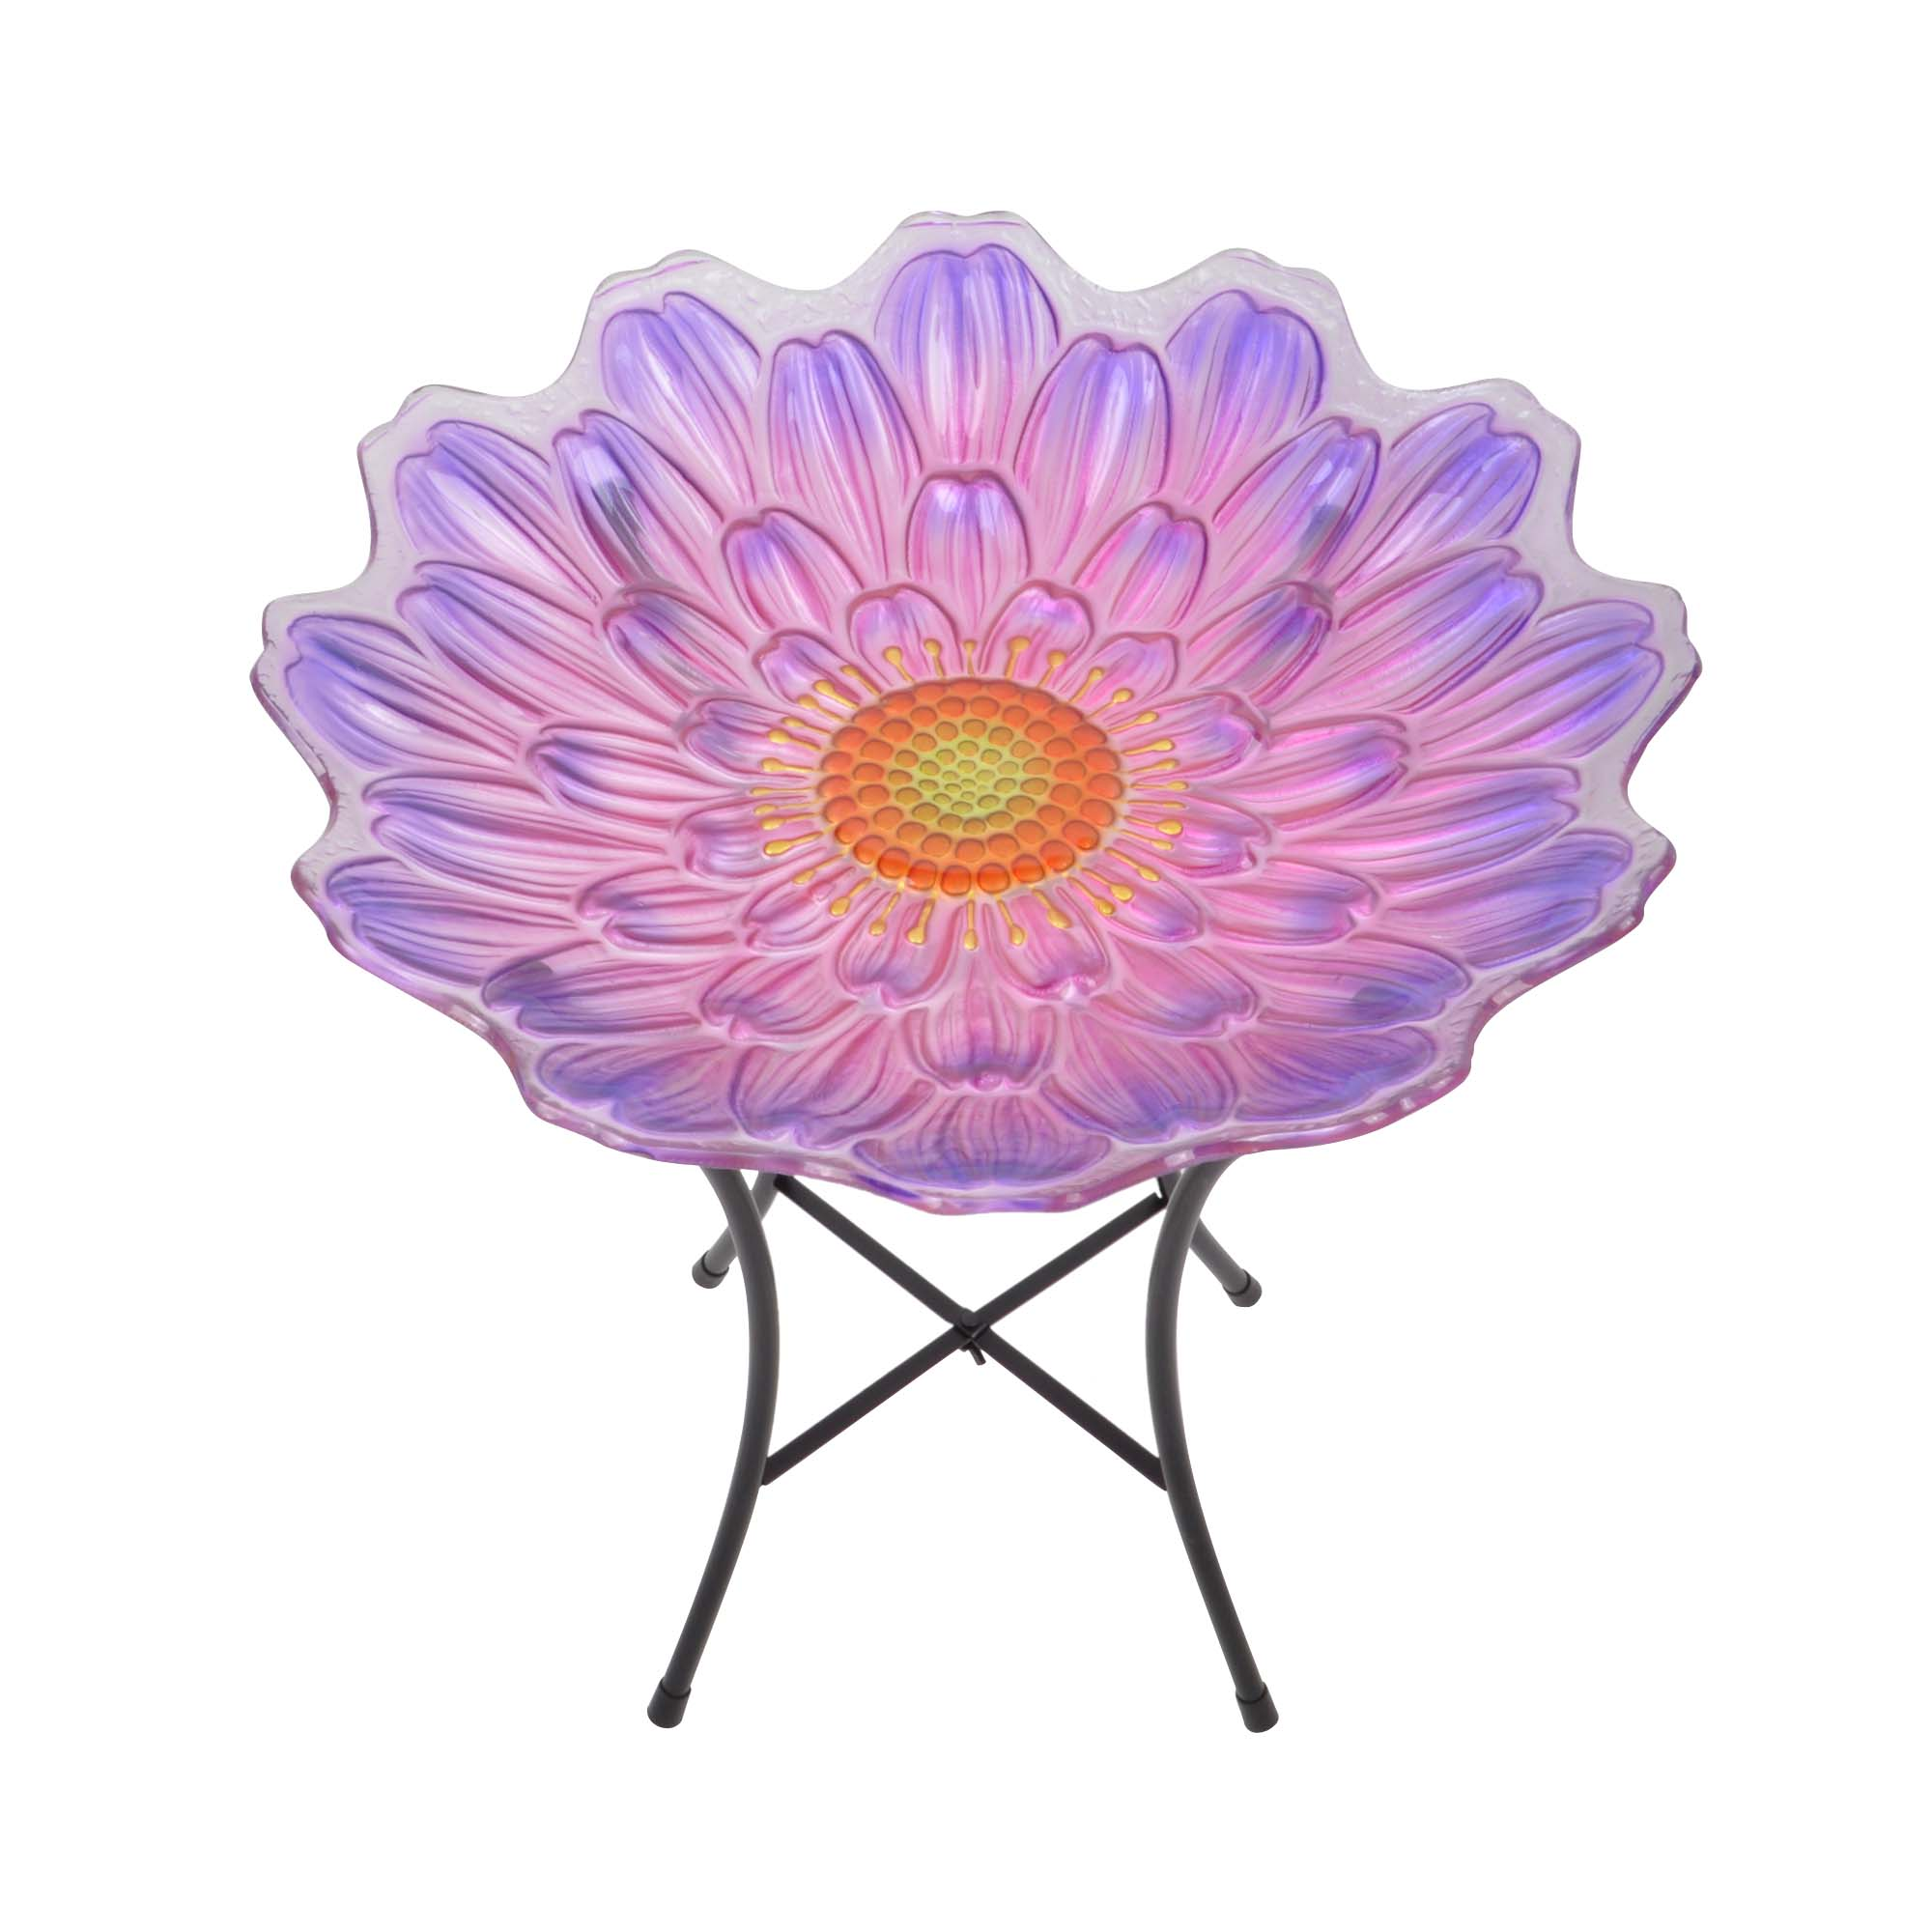 "Peaktop Outdoor 18"" Flower Glass Birdbath pink and purple by Teamson Design Corp."